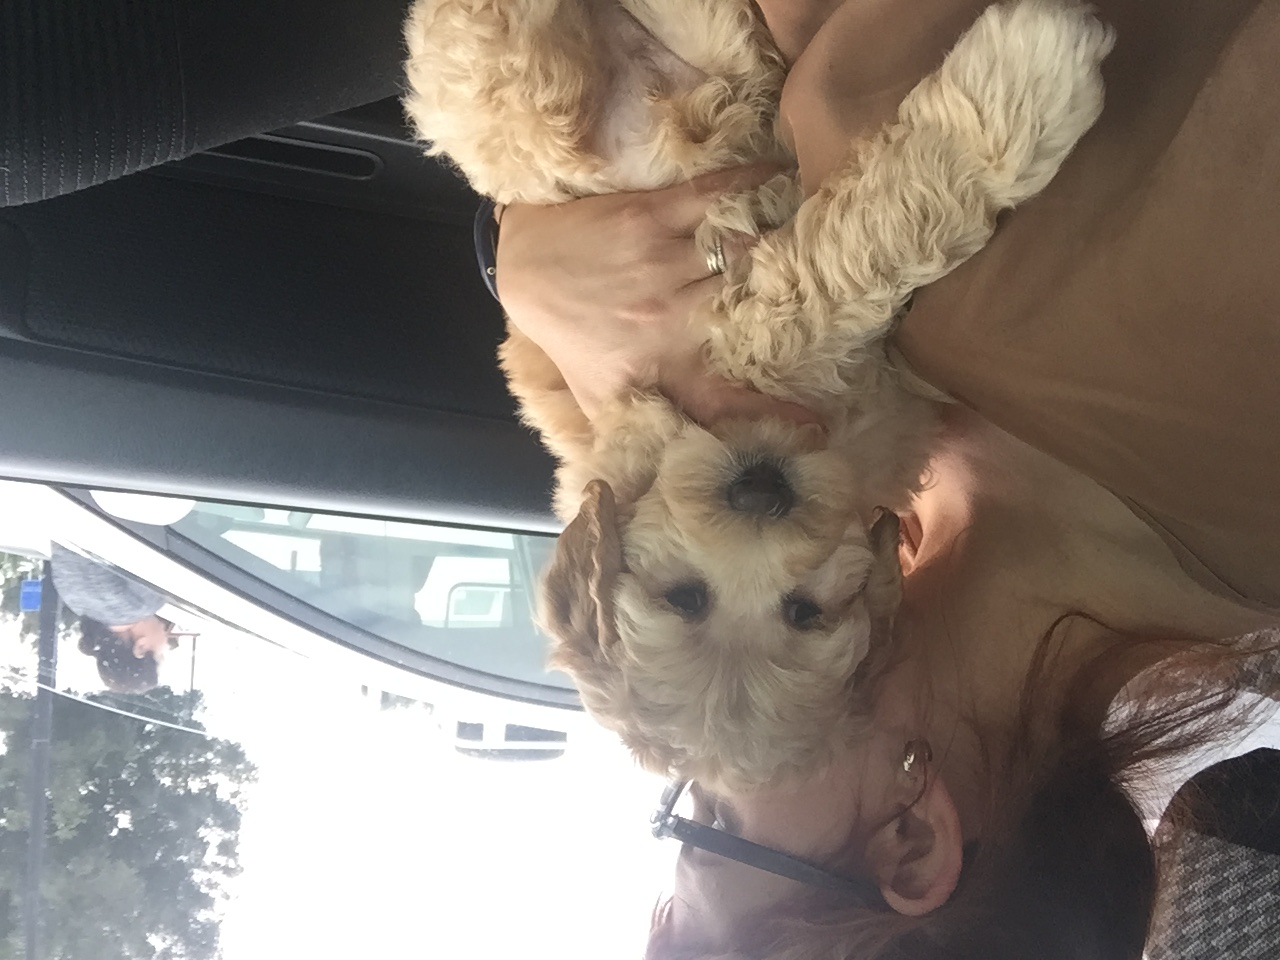 My first ride home